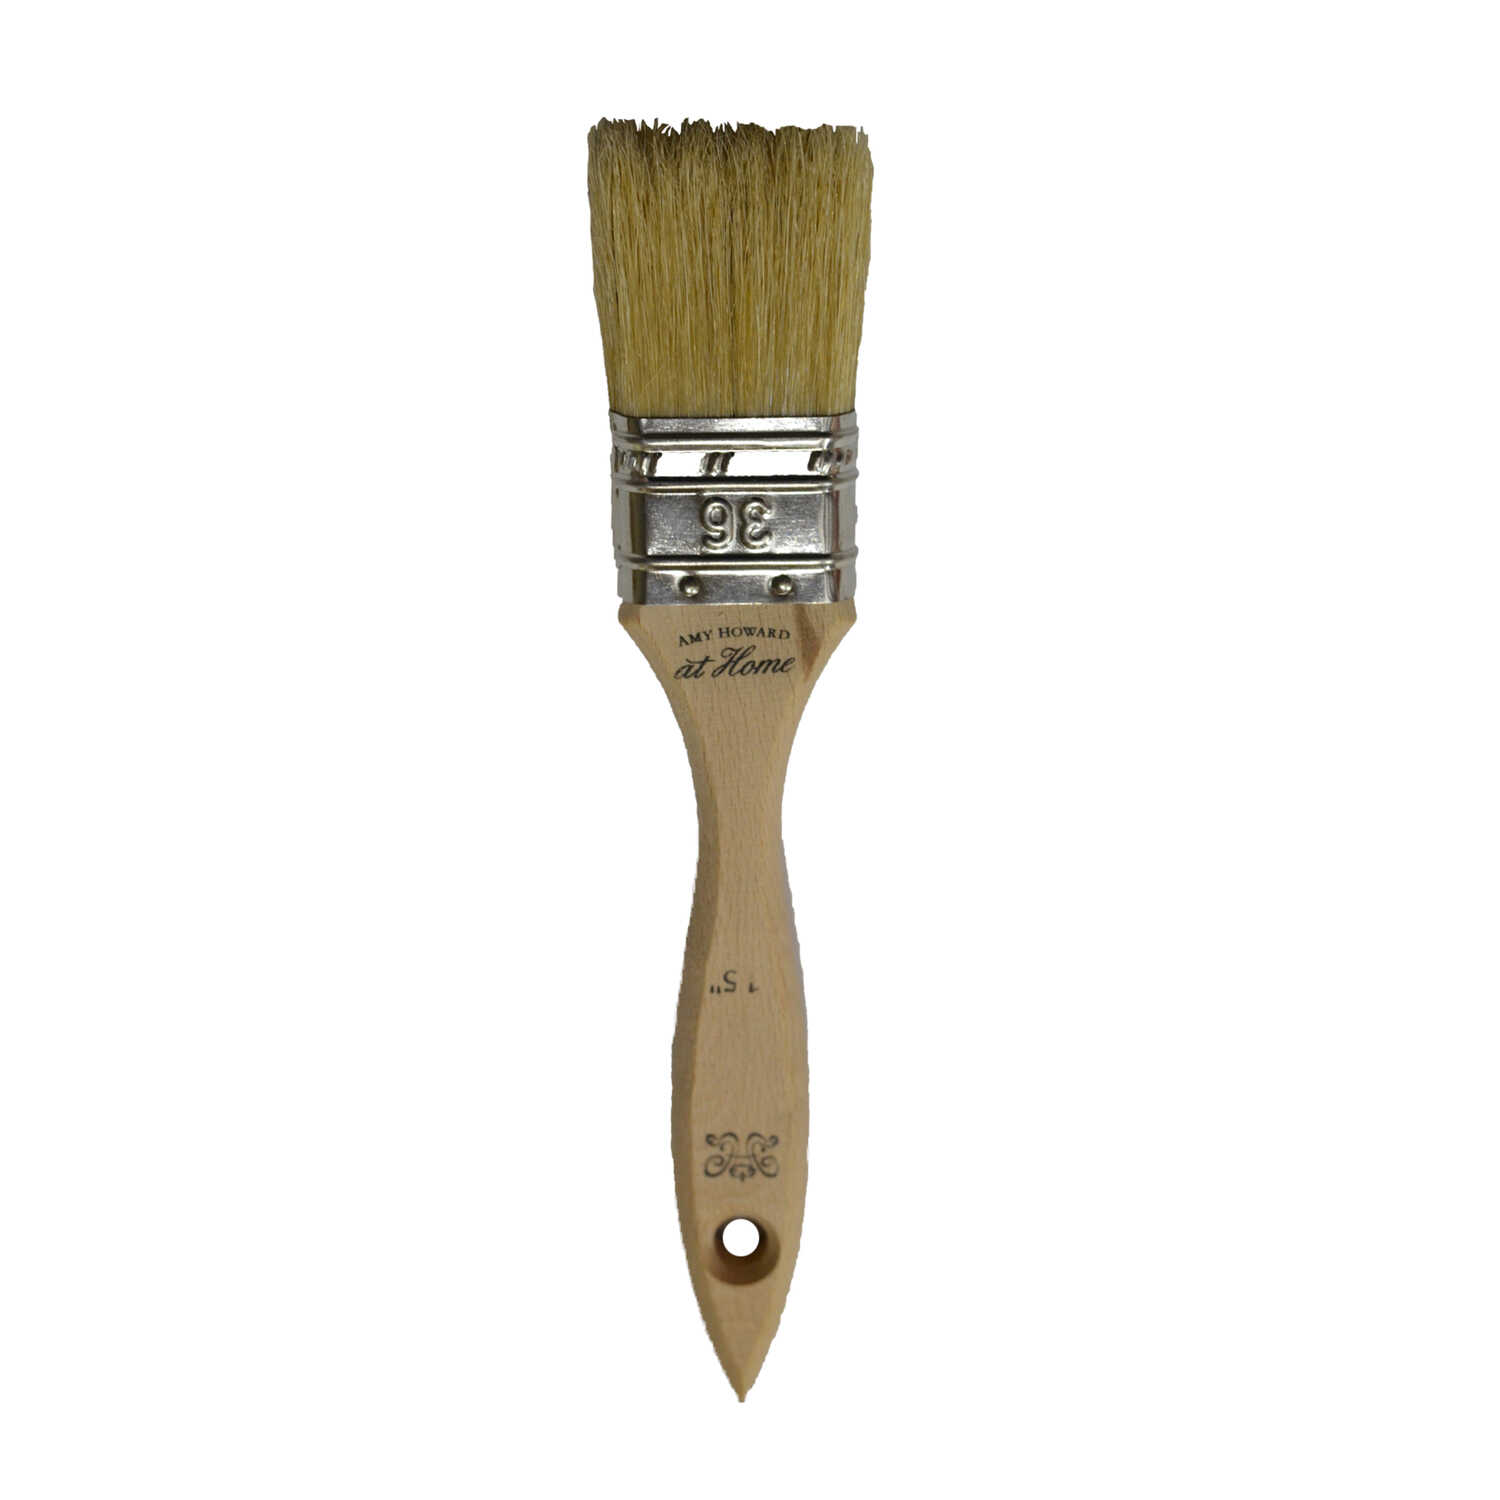 Amy Howard at Home  1-1/2 in. W Flat  Paint Brush  China Bristle